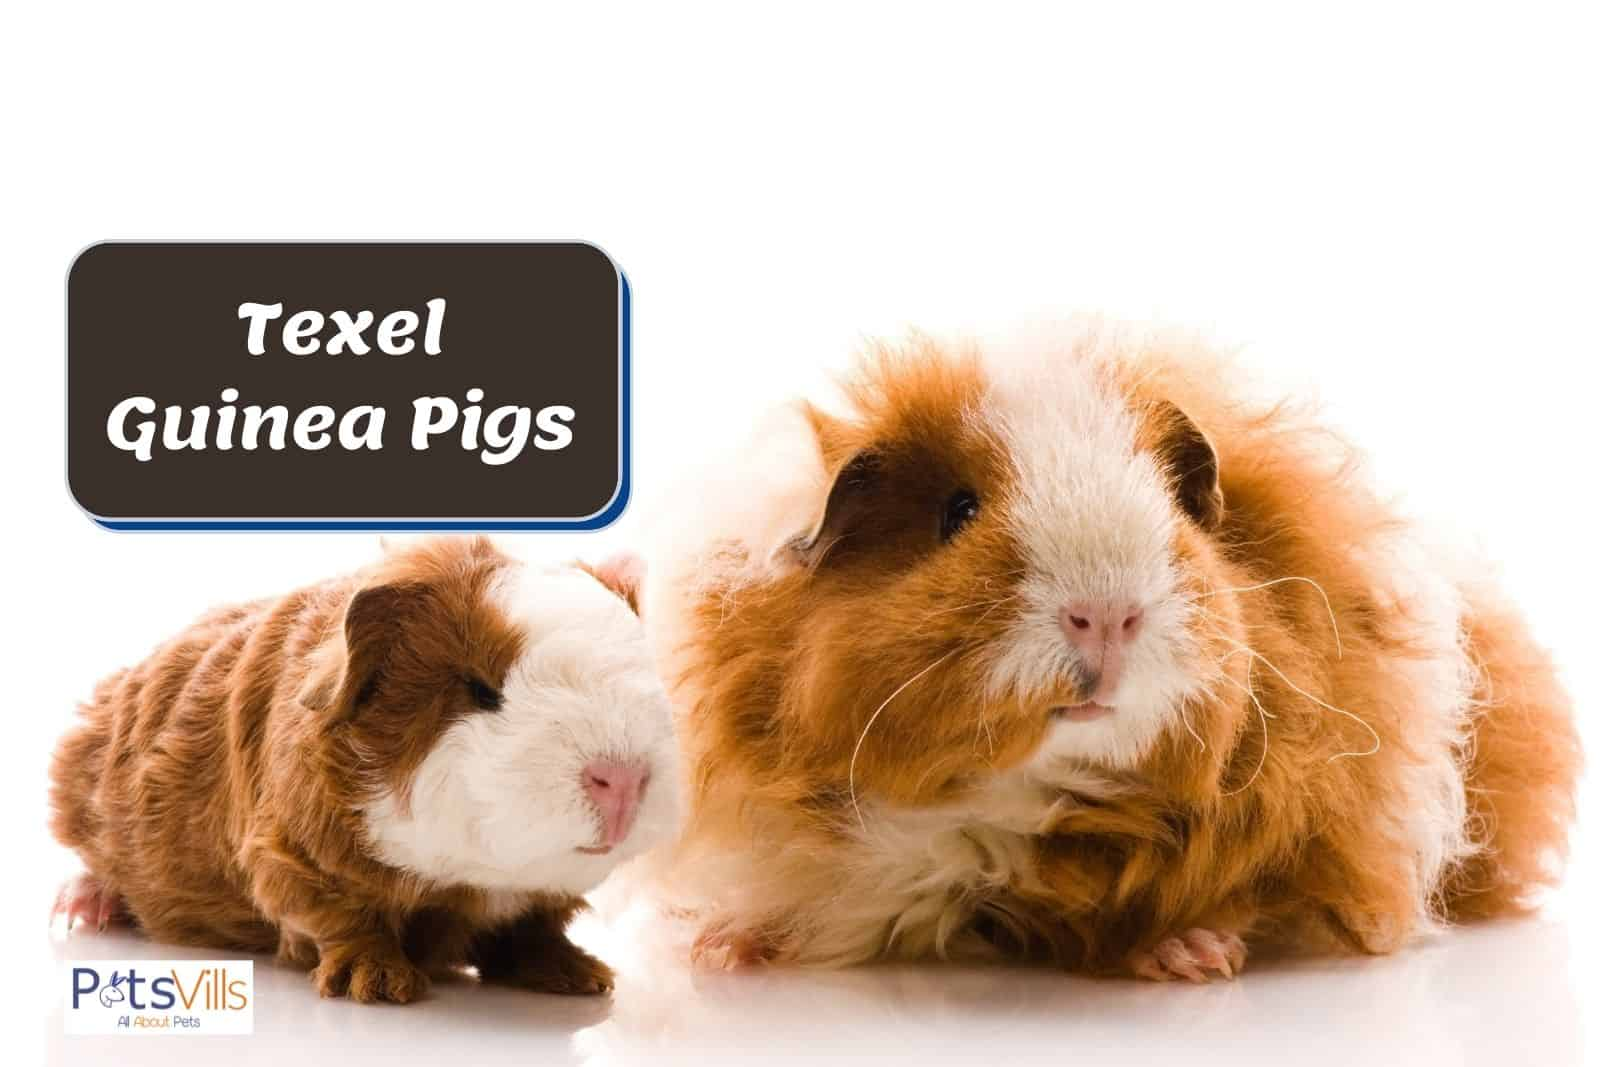 mother and baby texel guinea pigs